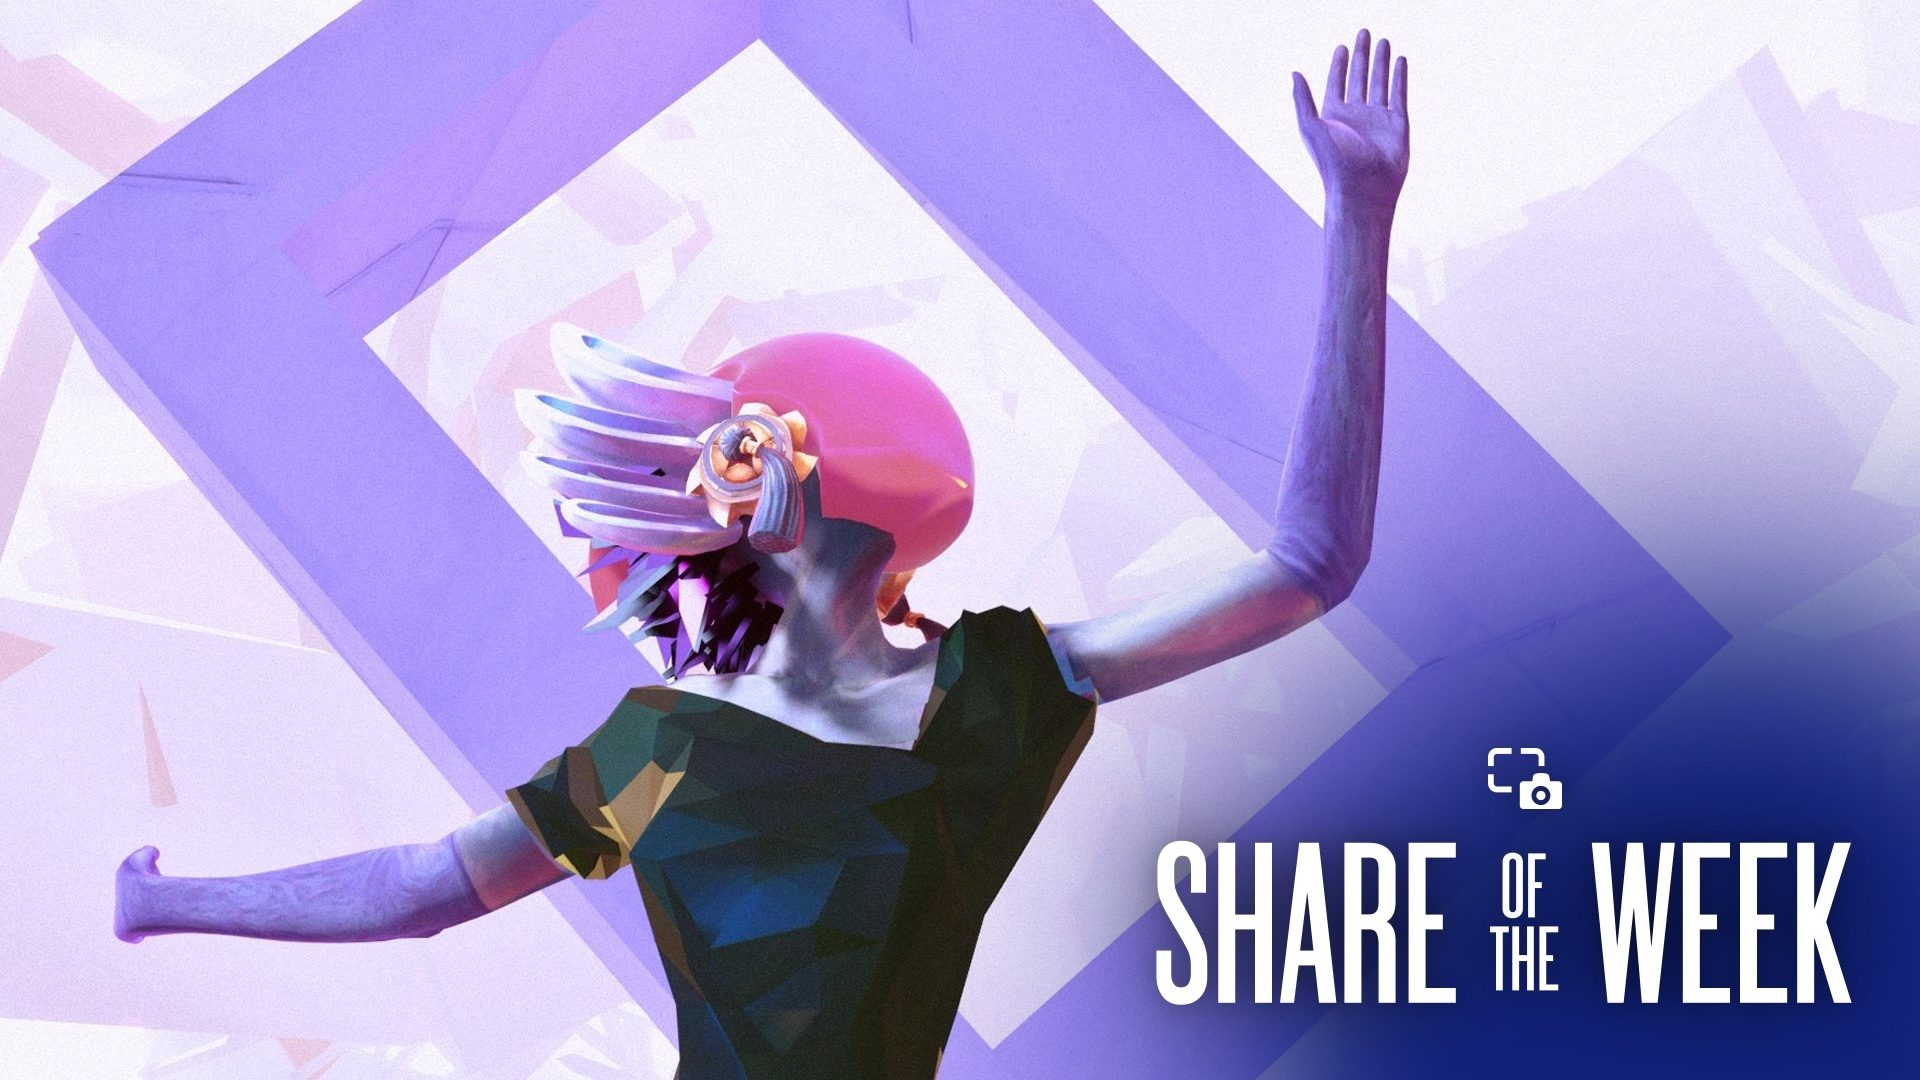 share-of-the-7-days:-purple